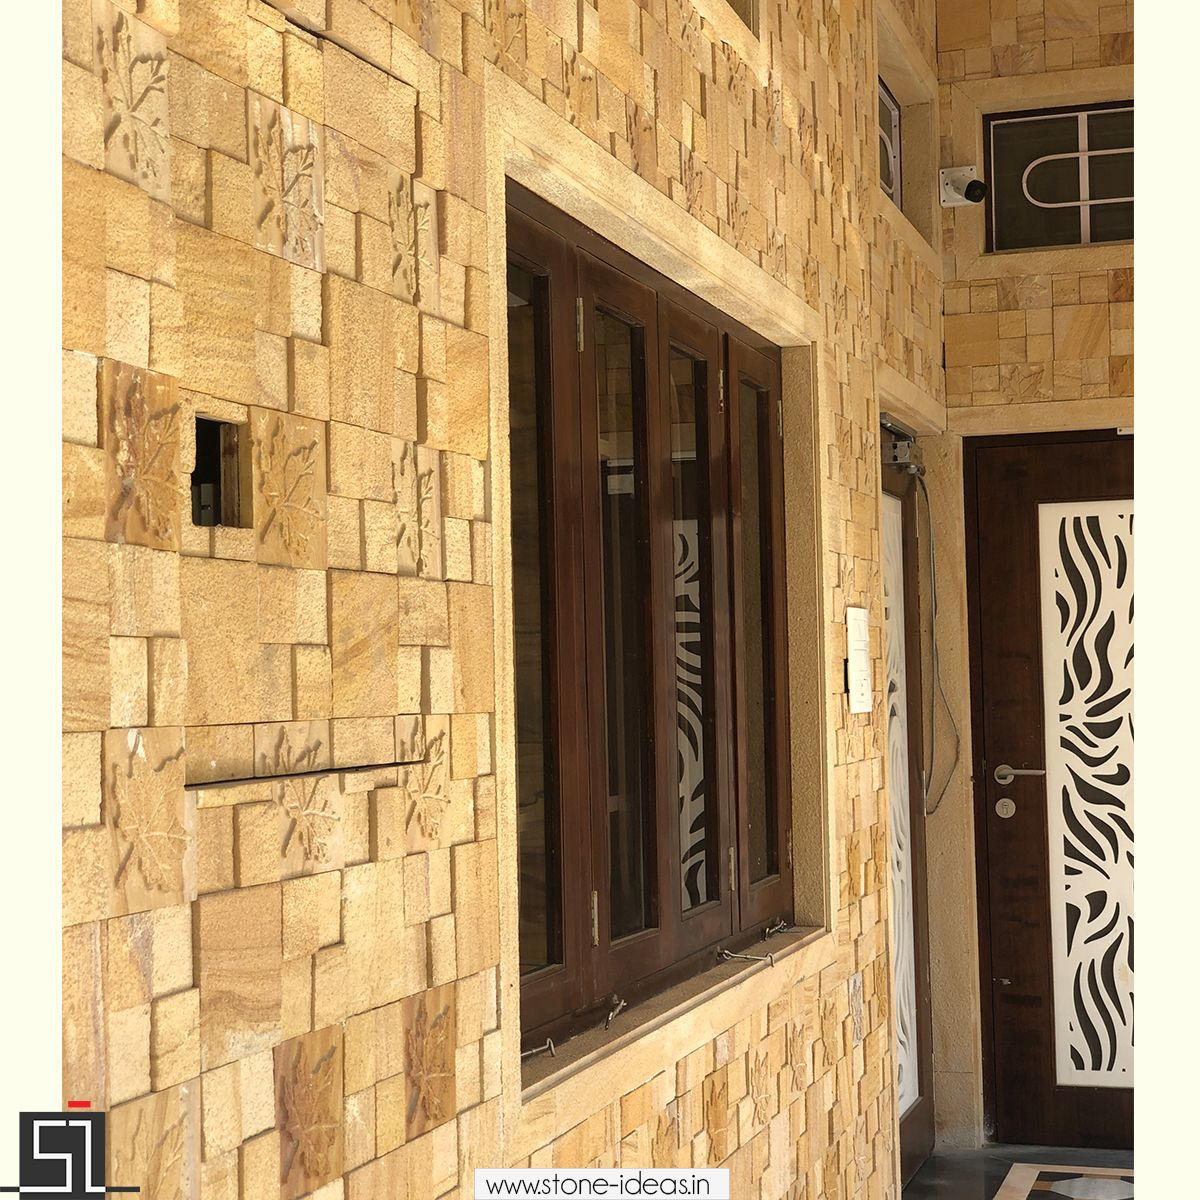 Front Elevation Wall Cladding Stone Cladding Exterior Stone Wall Cladding Exterior Wall Tiles